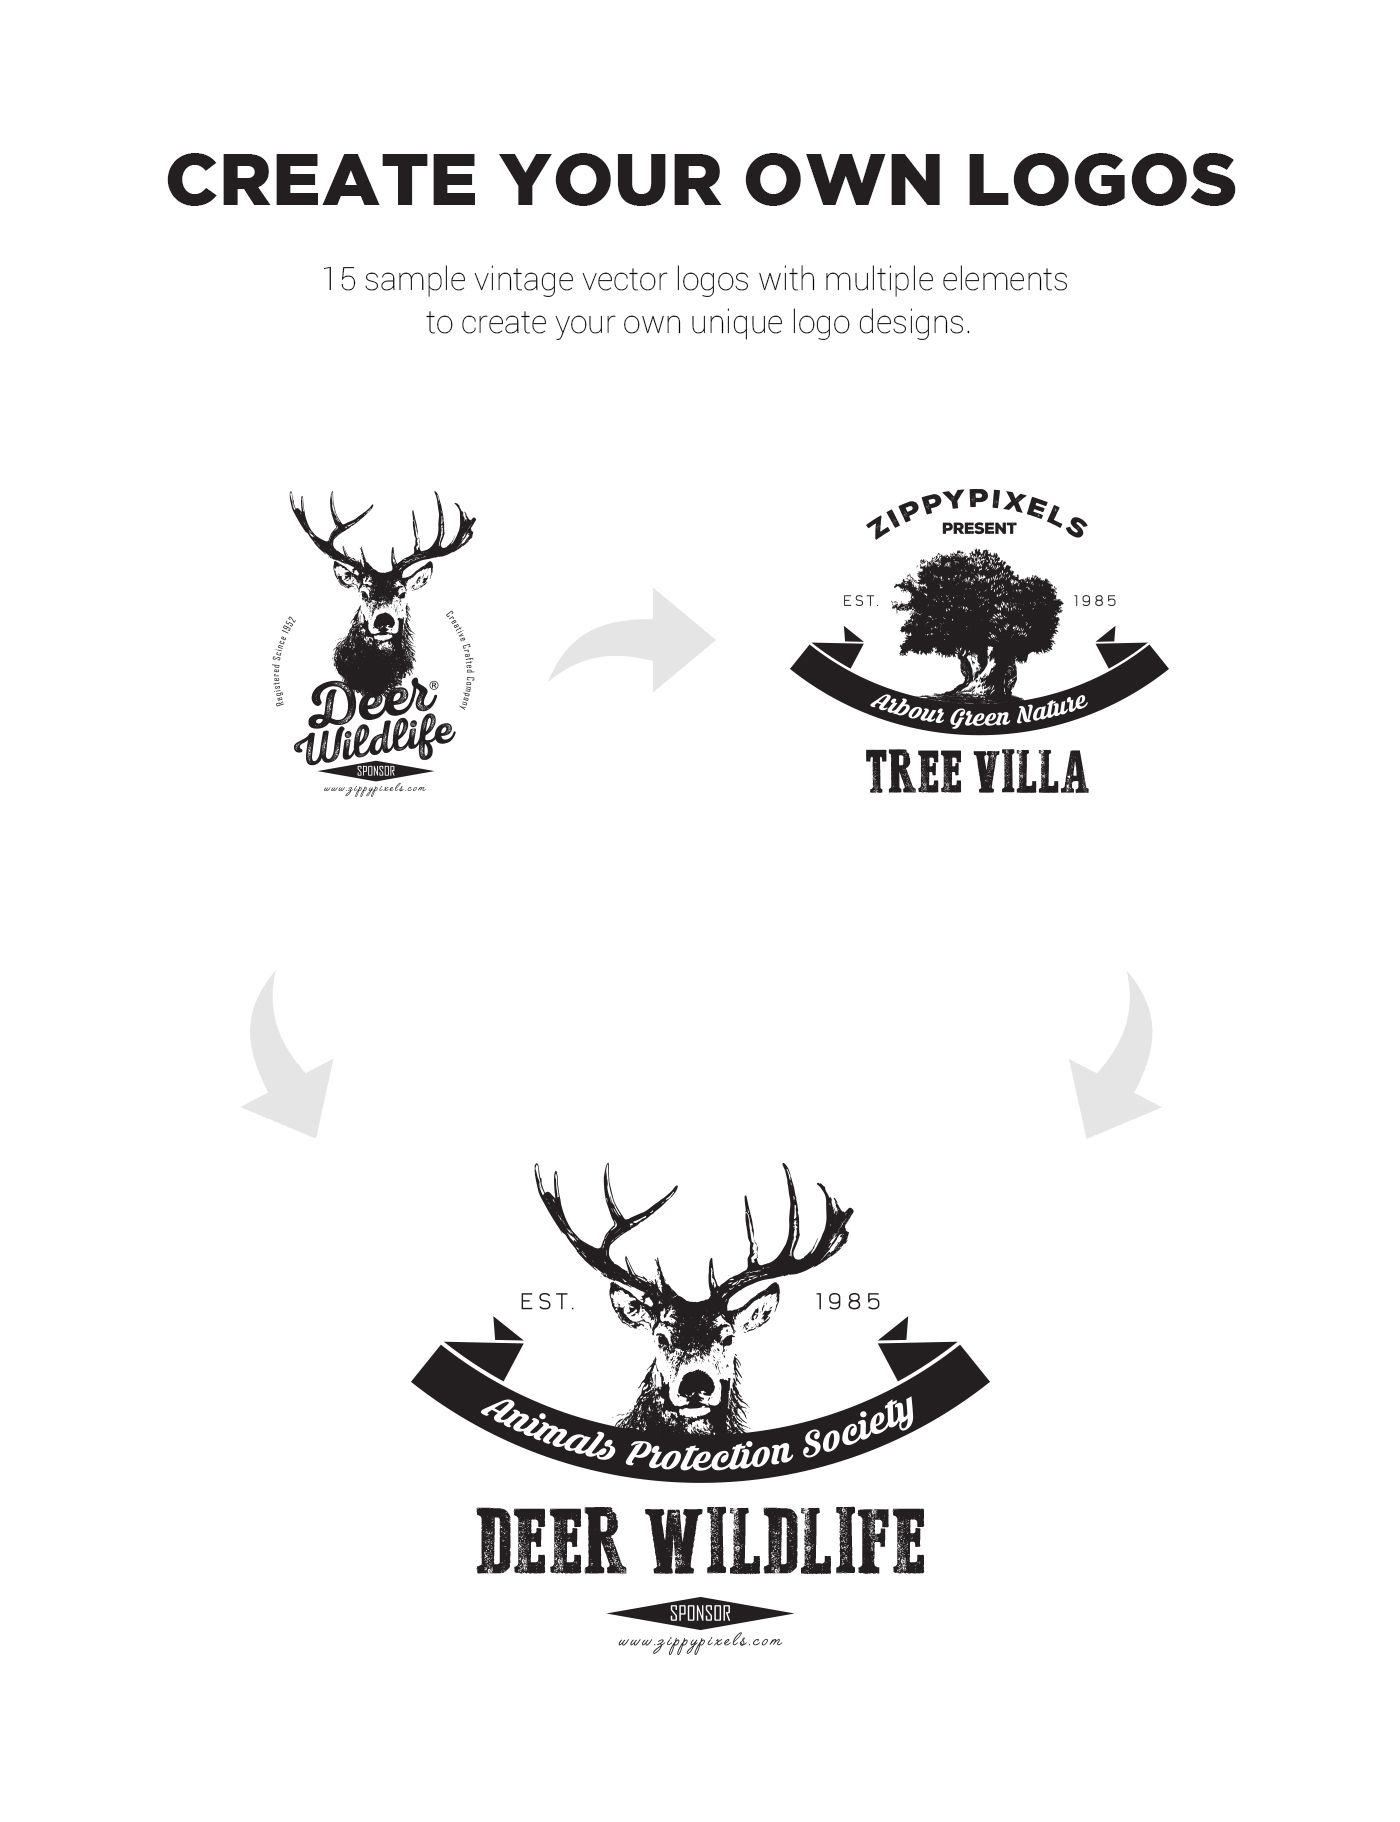 This free vintage logo design kit includes 15 beautifully